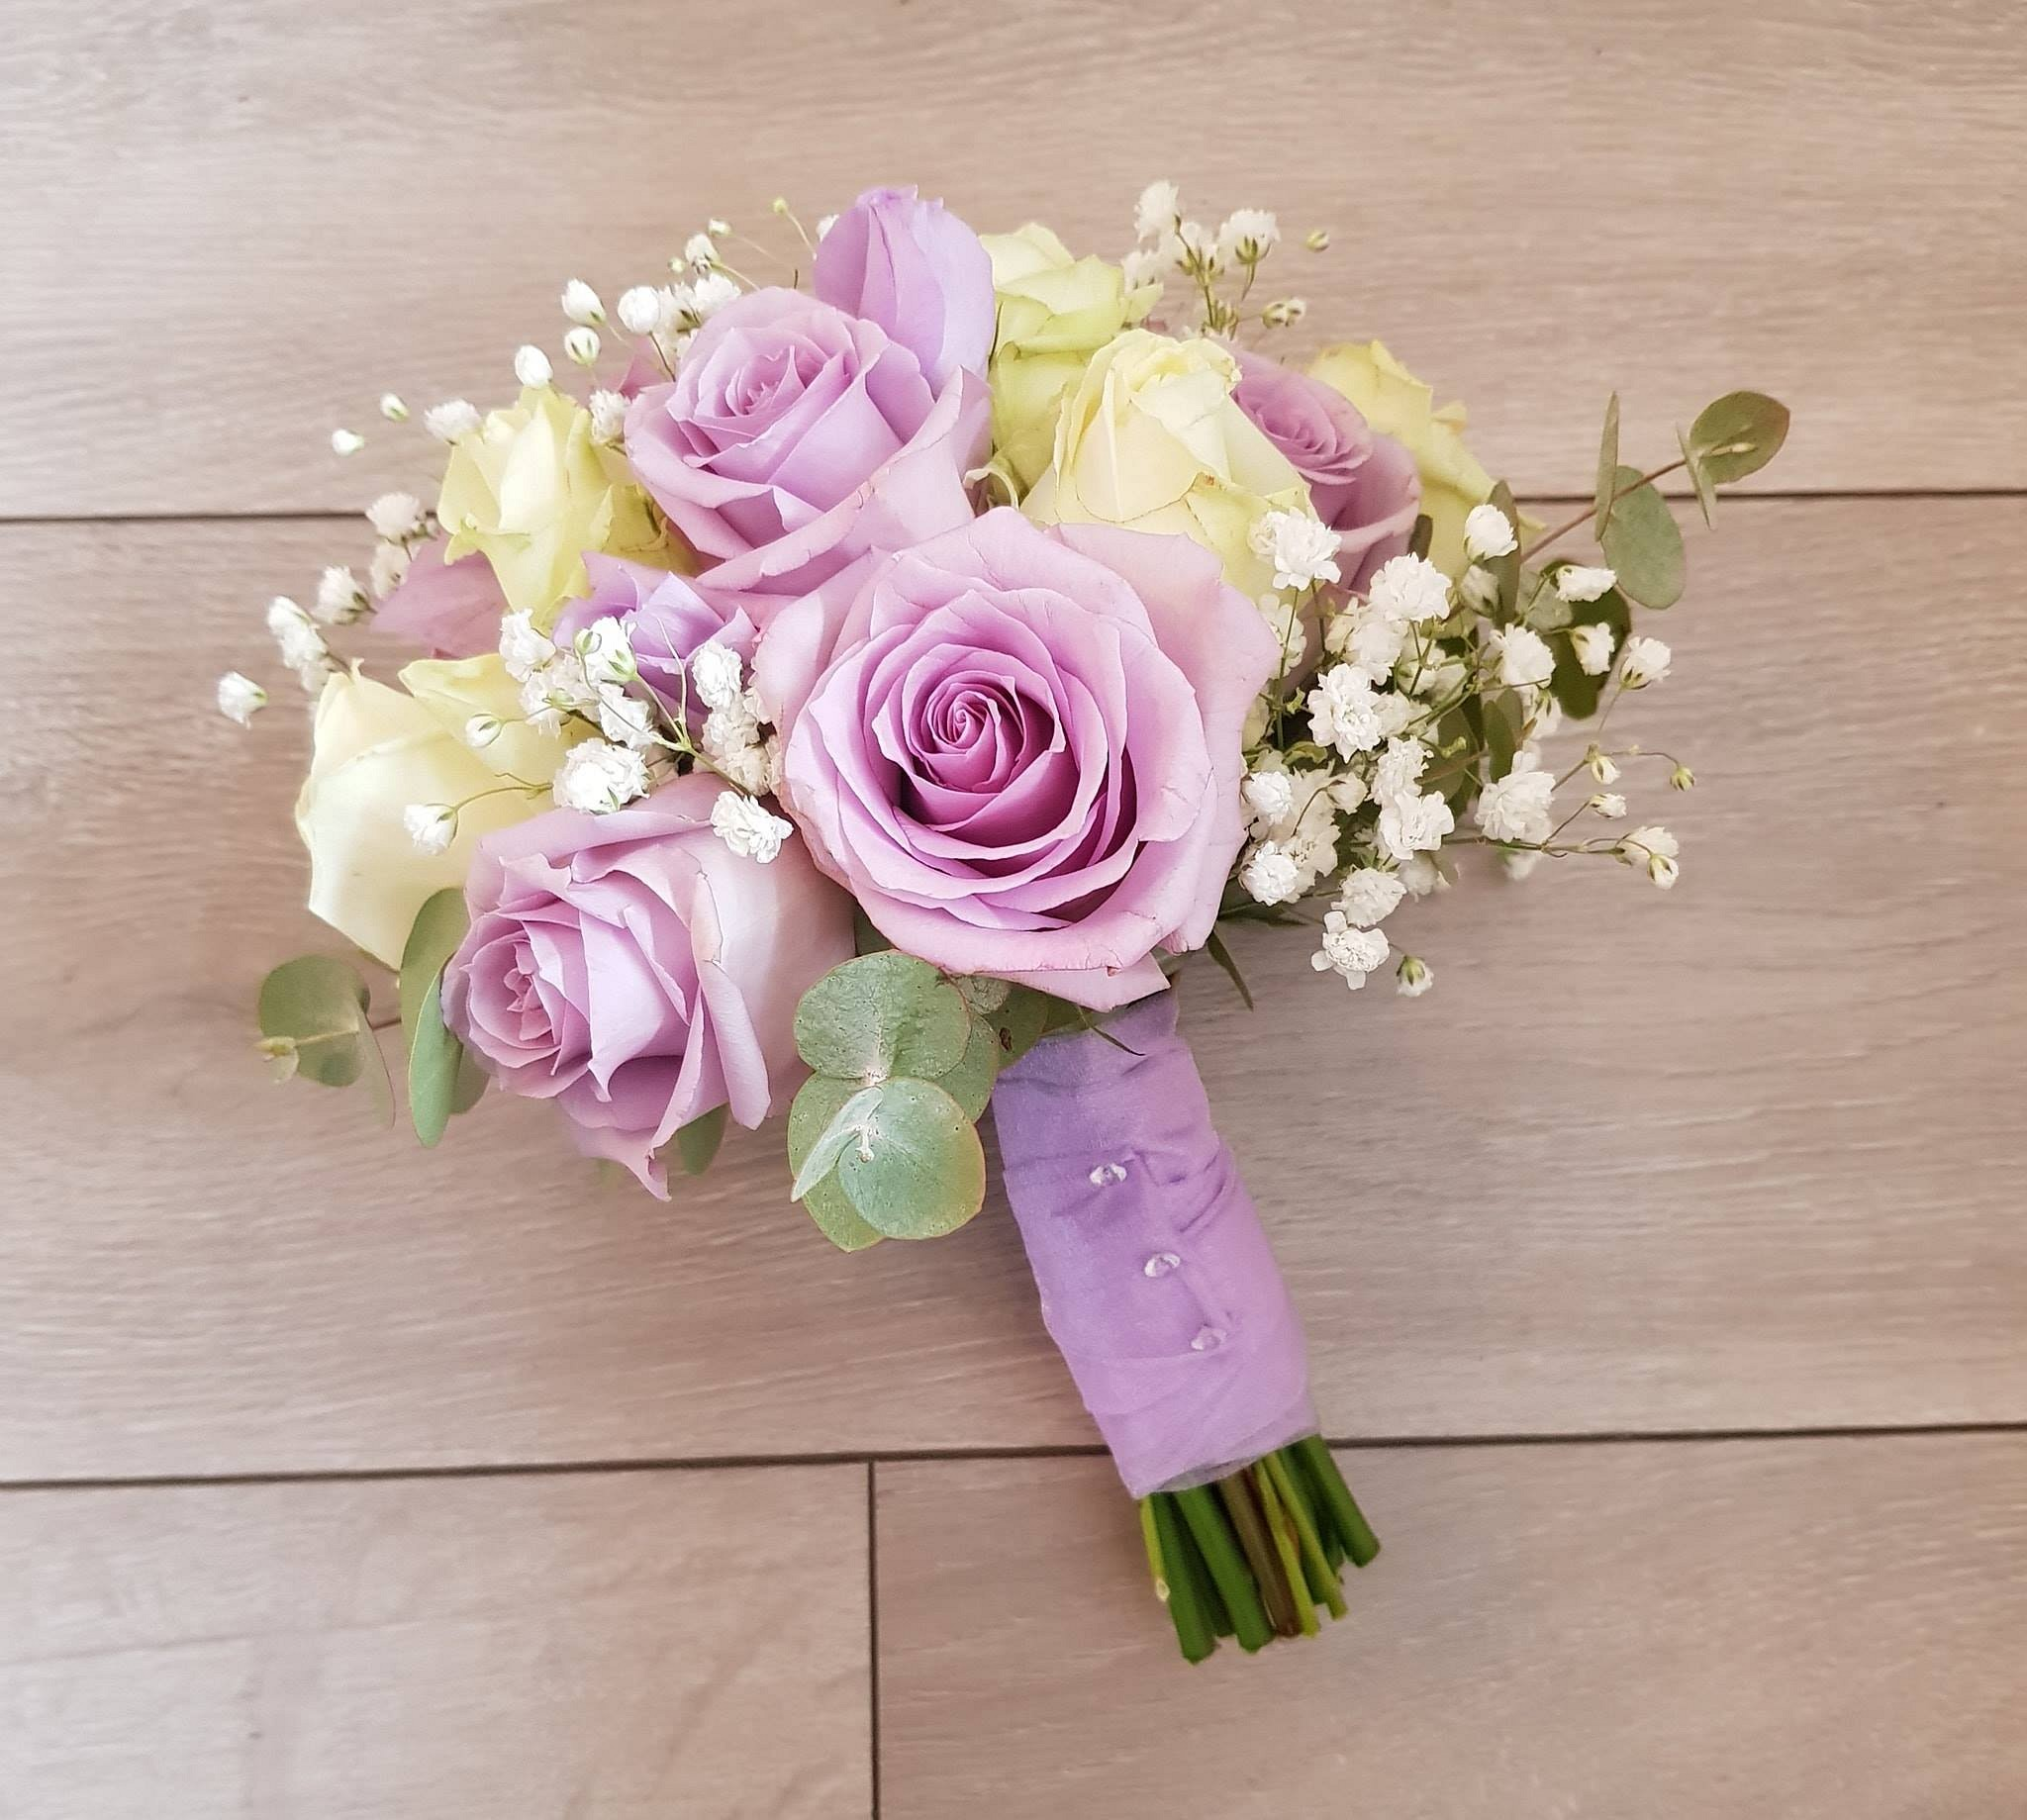 Lilac and ivory rose bridal flowers